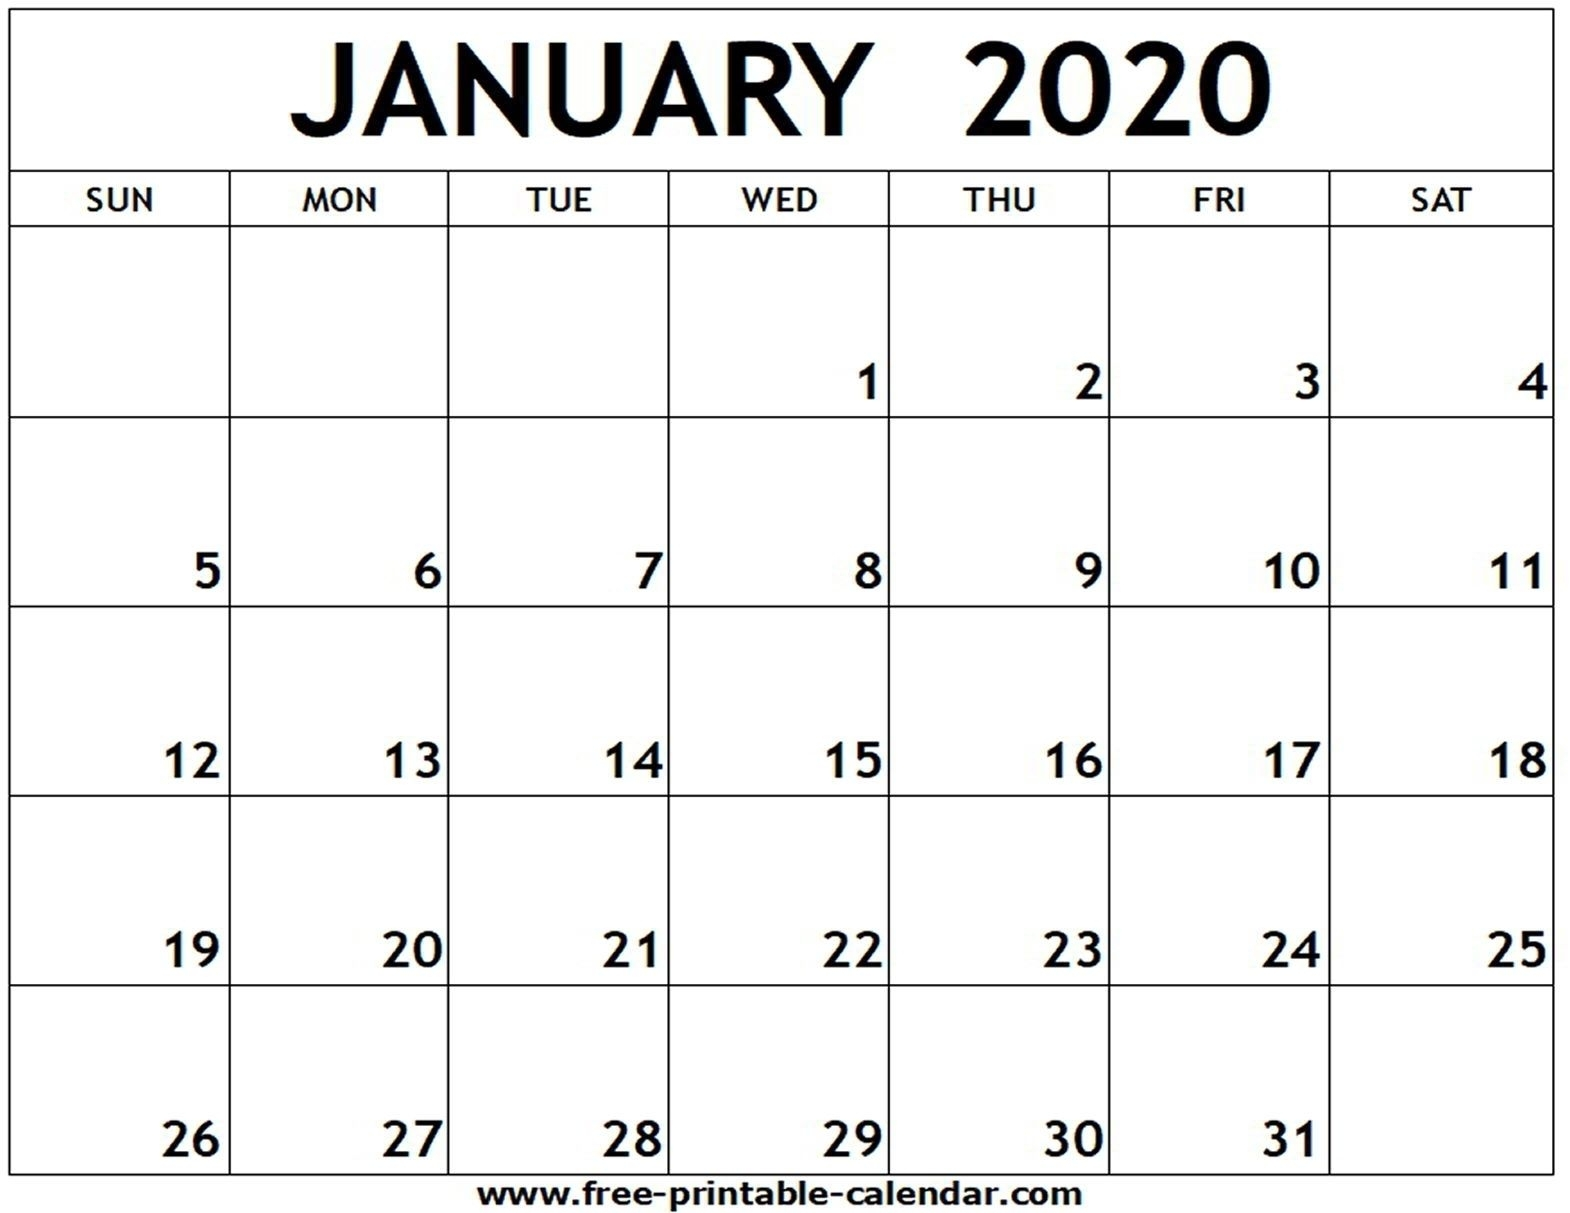 Printable Fill In Calendar 2020 In 2020 | Free Printable within 2020 Calendar To Fill In